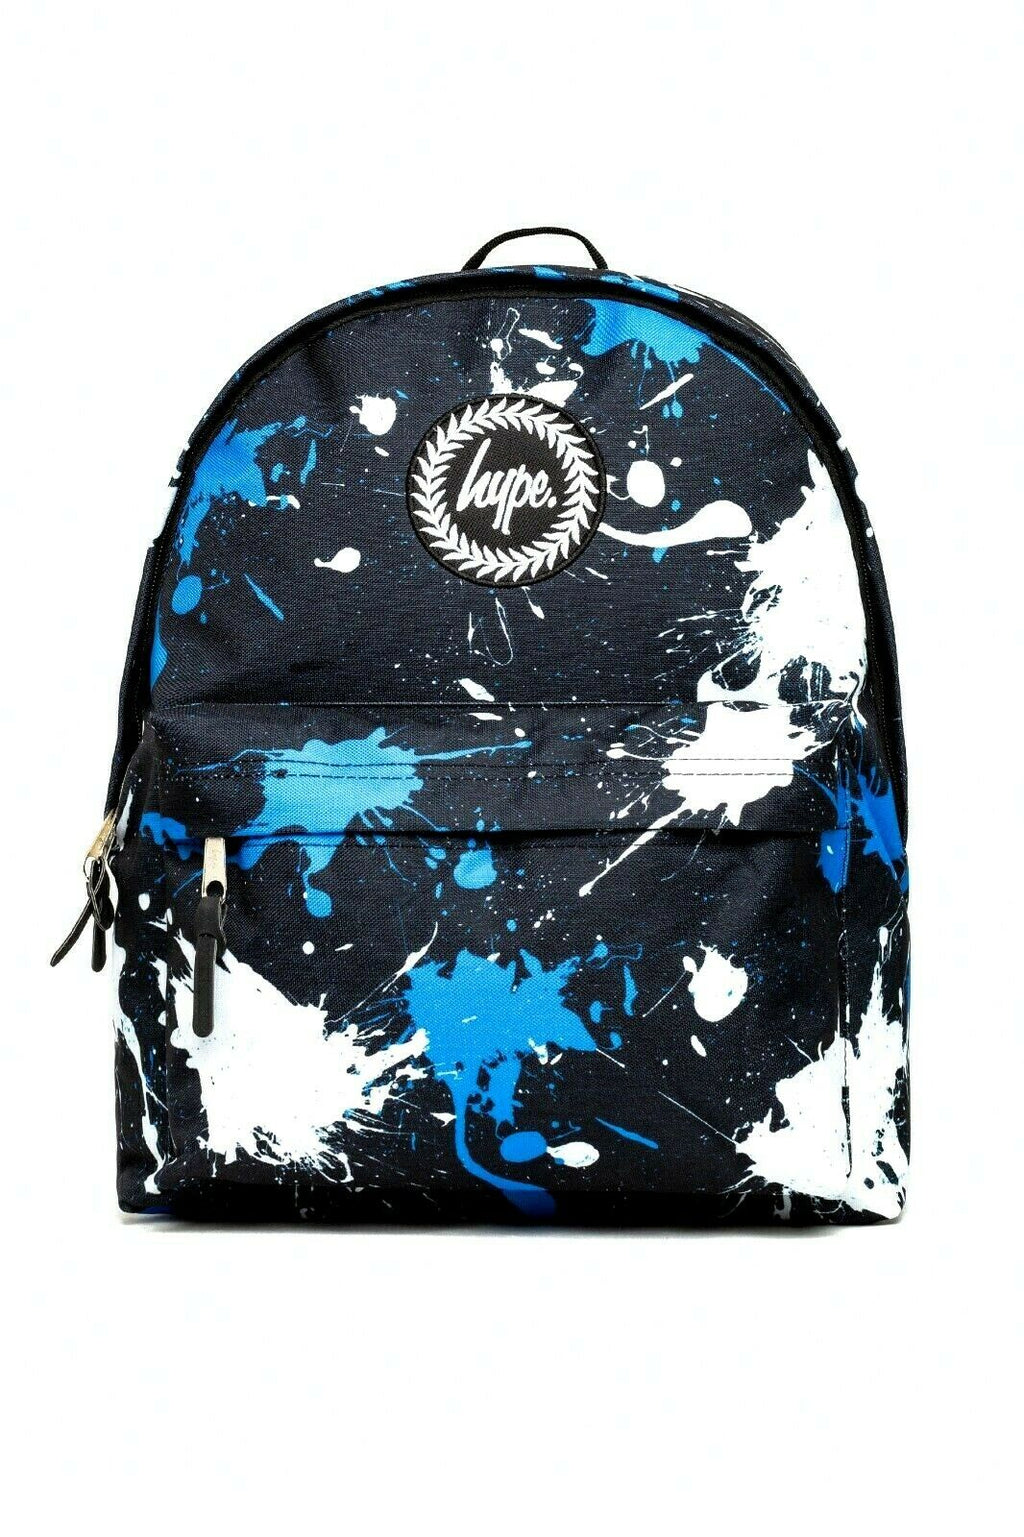 HYPE SPLATTER BACKPACK RUCKSACK BAG - BLACK/WHITE/BLUE